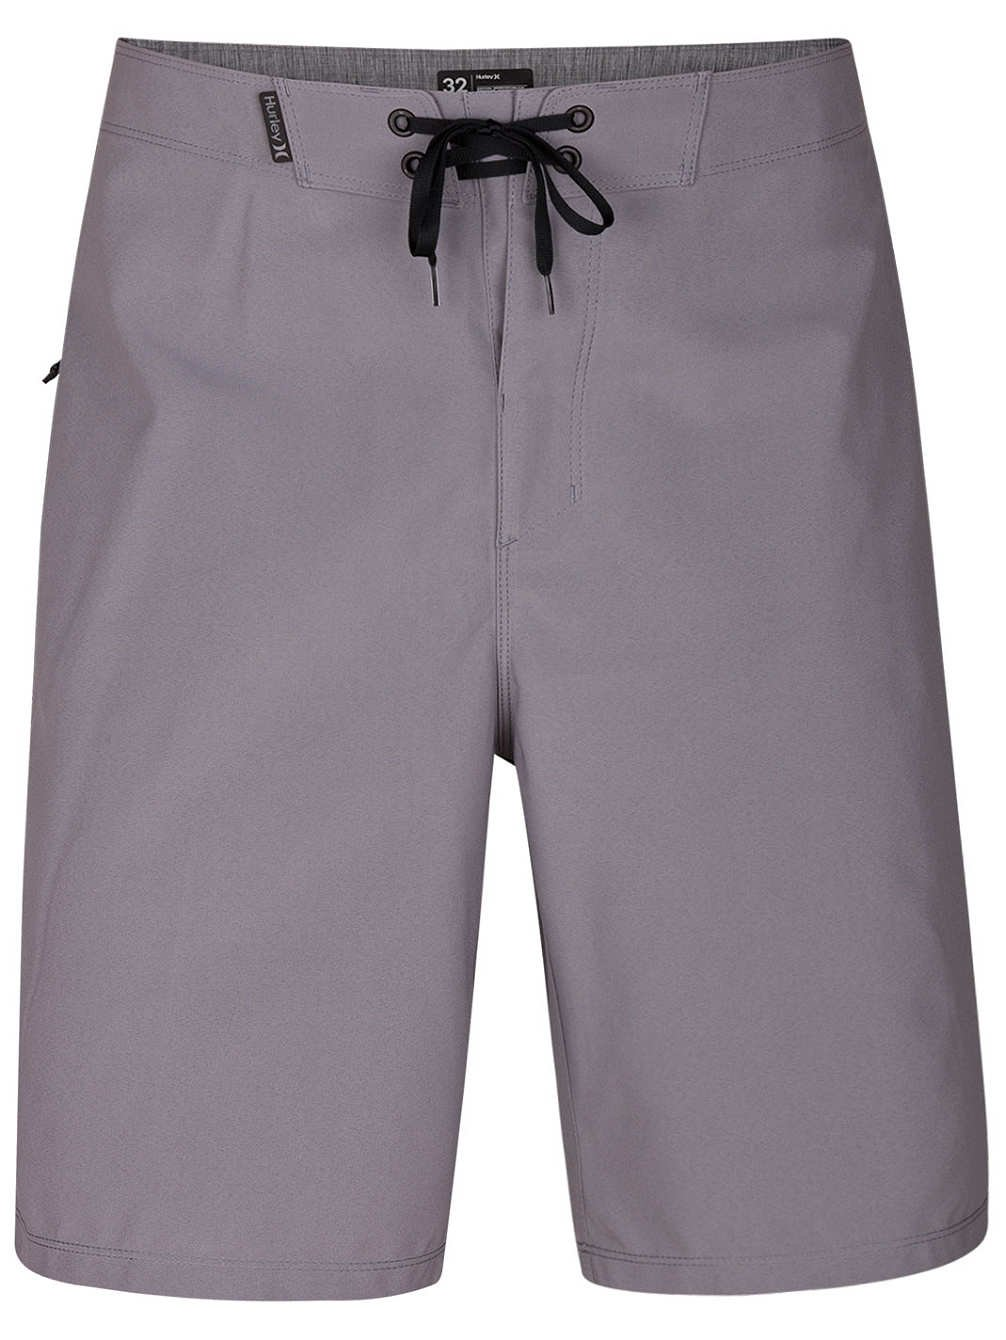 Hurley Men's Phantom One & Only 20'' Stretch Boardshorts Cool Grey 34